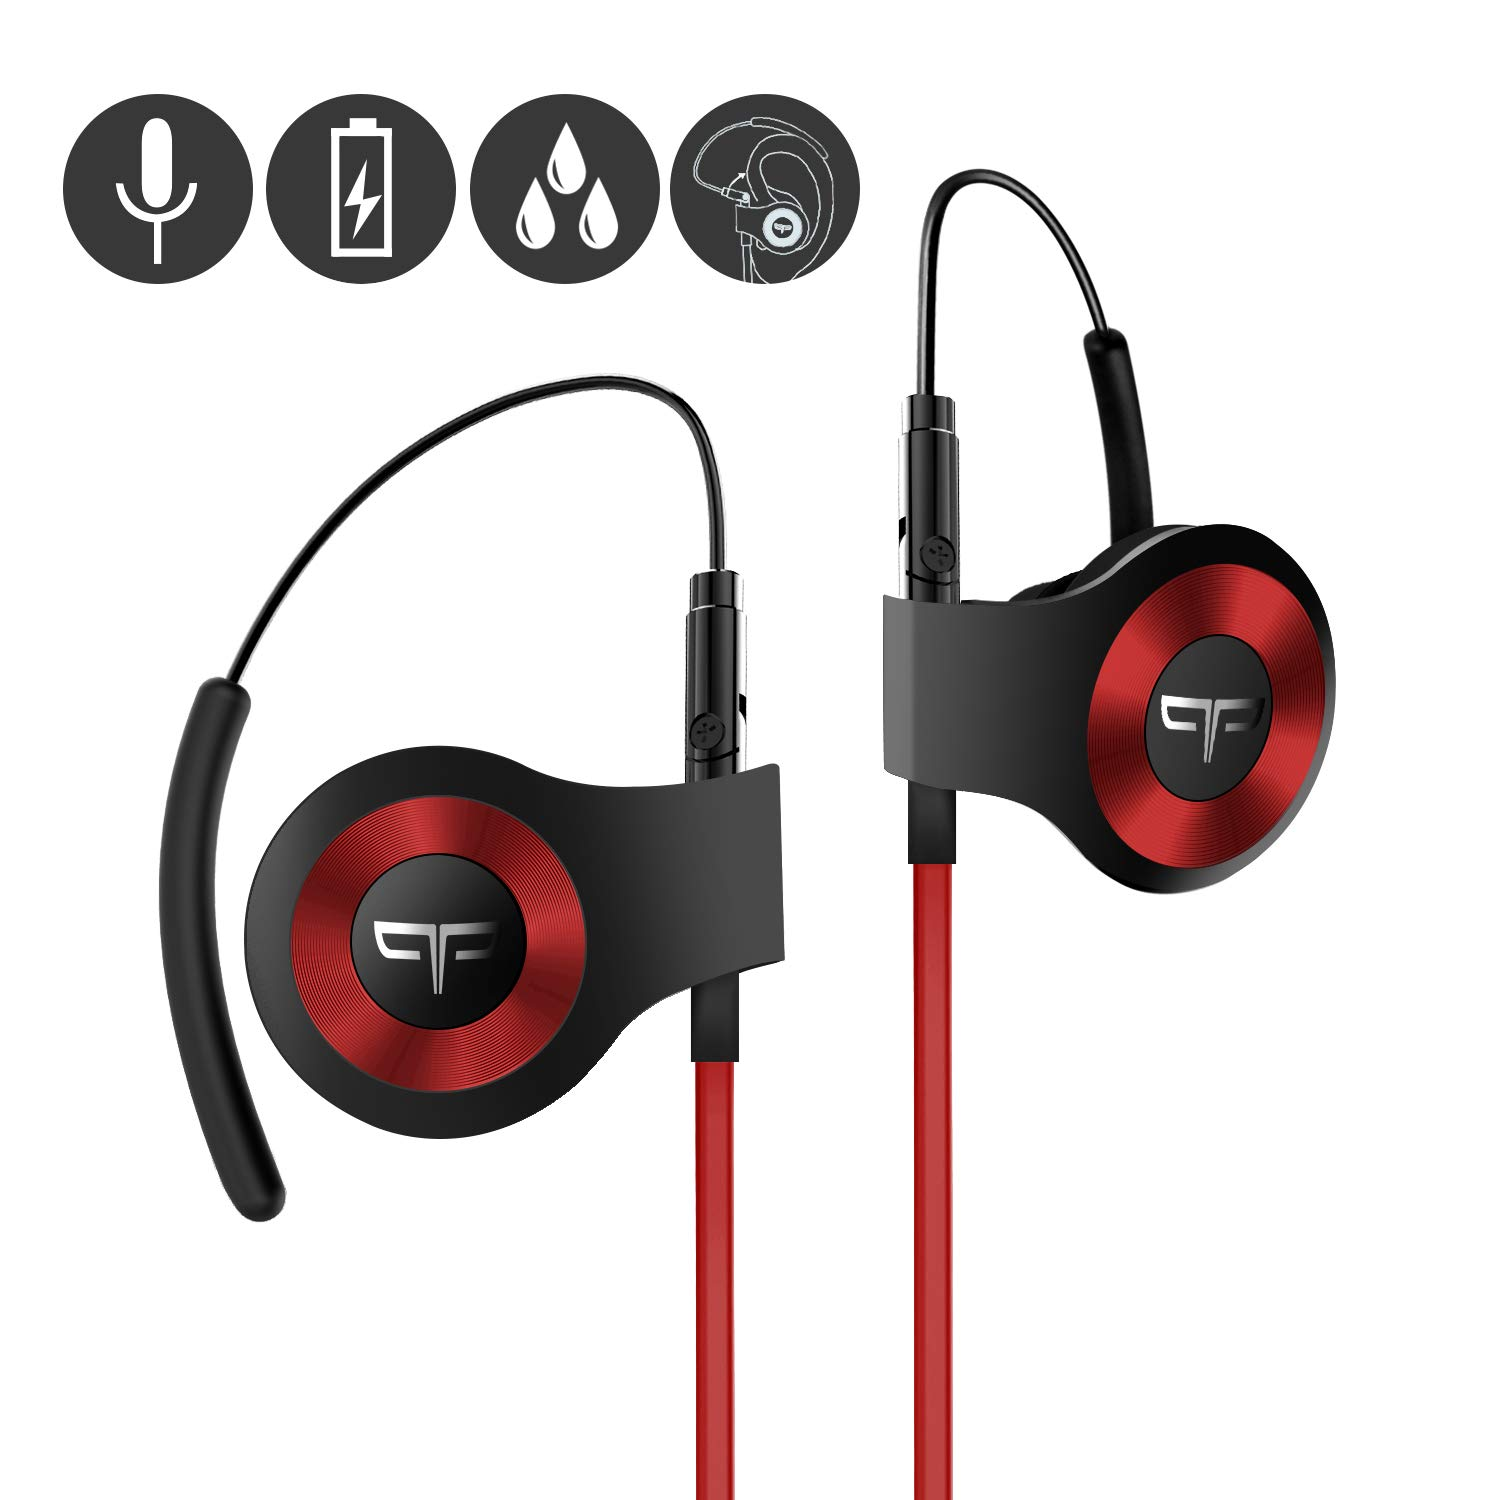 Origem HS-3 Bluetooth Headphones, Wireless Sports Earbuds with DSP Audio Algorithm, True Voice Recognition, Rotatable Ear Hook, Graphene Driver, Fast Charging and Built-in Smart Mic Red